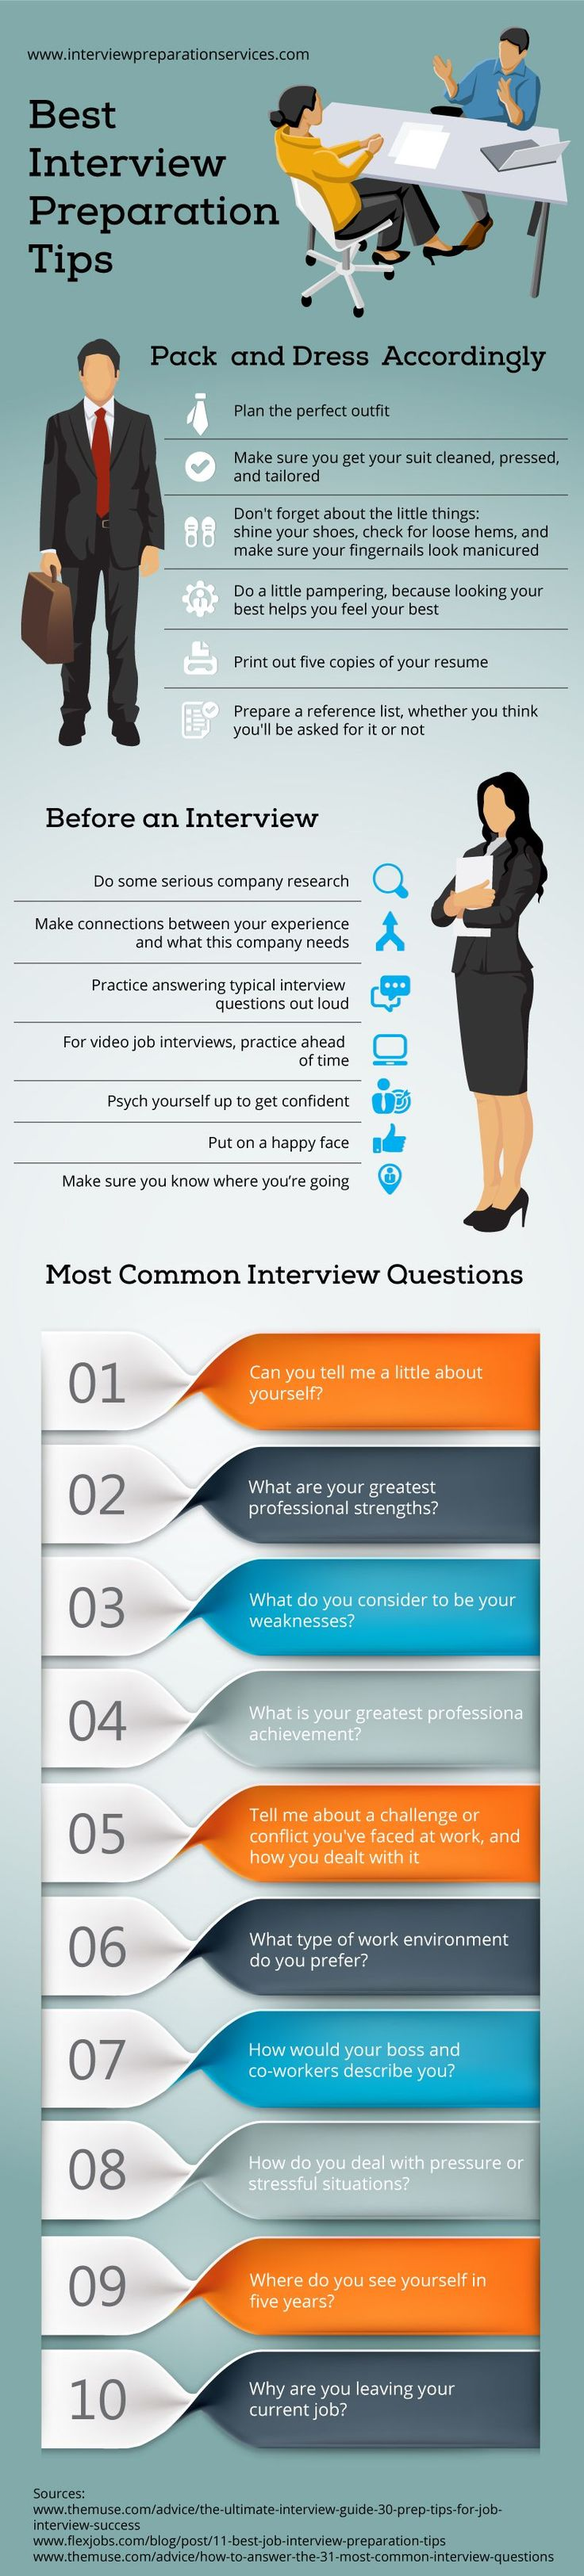 25+ best ideas about Job interview preparation on Pinterest ...